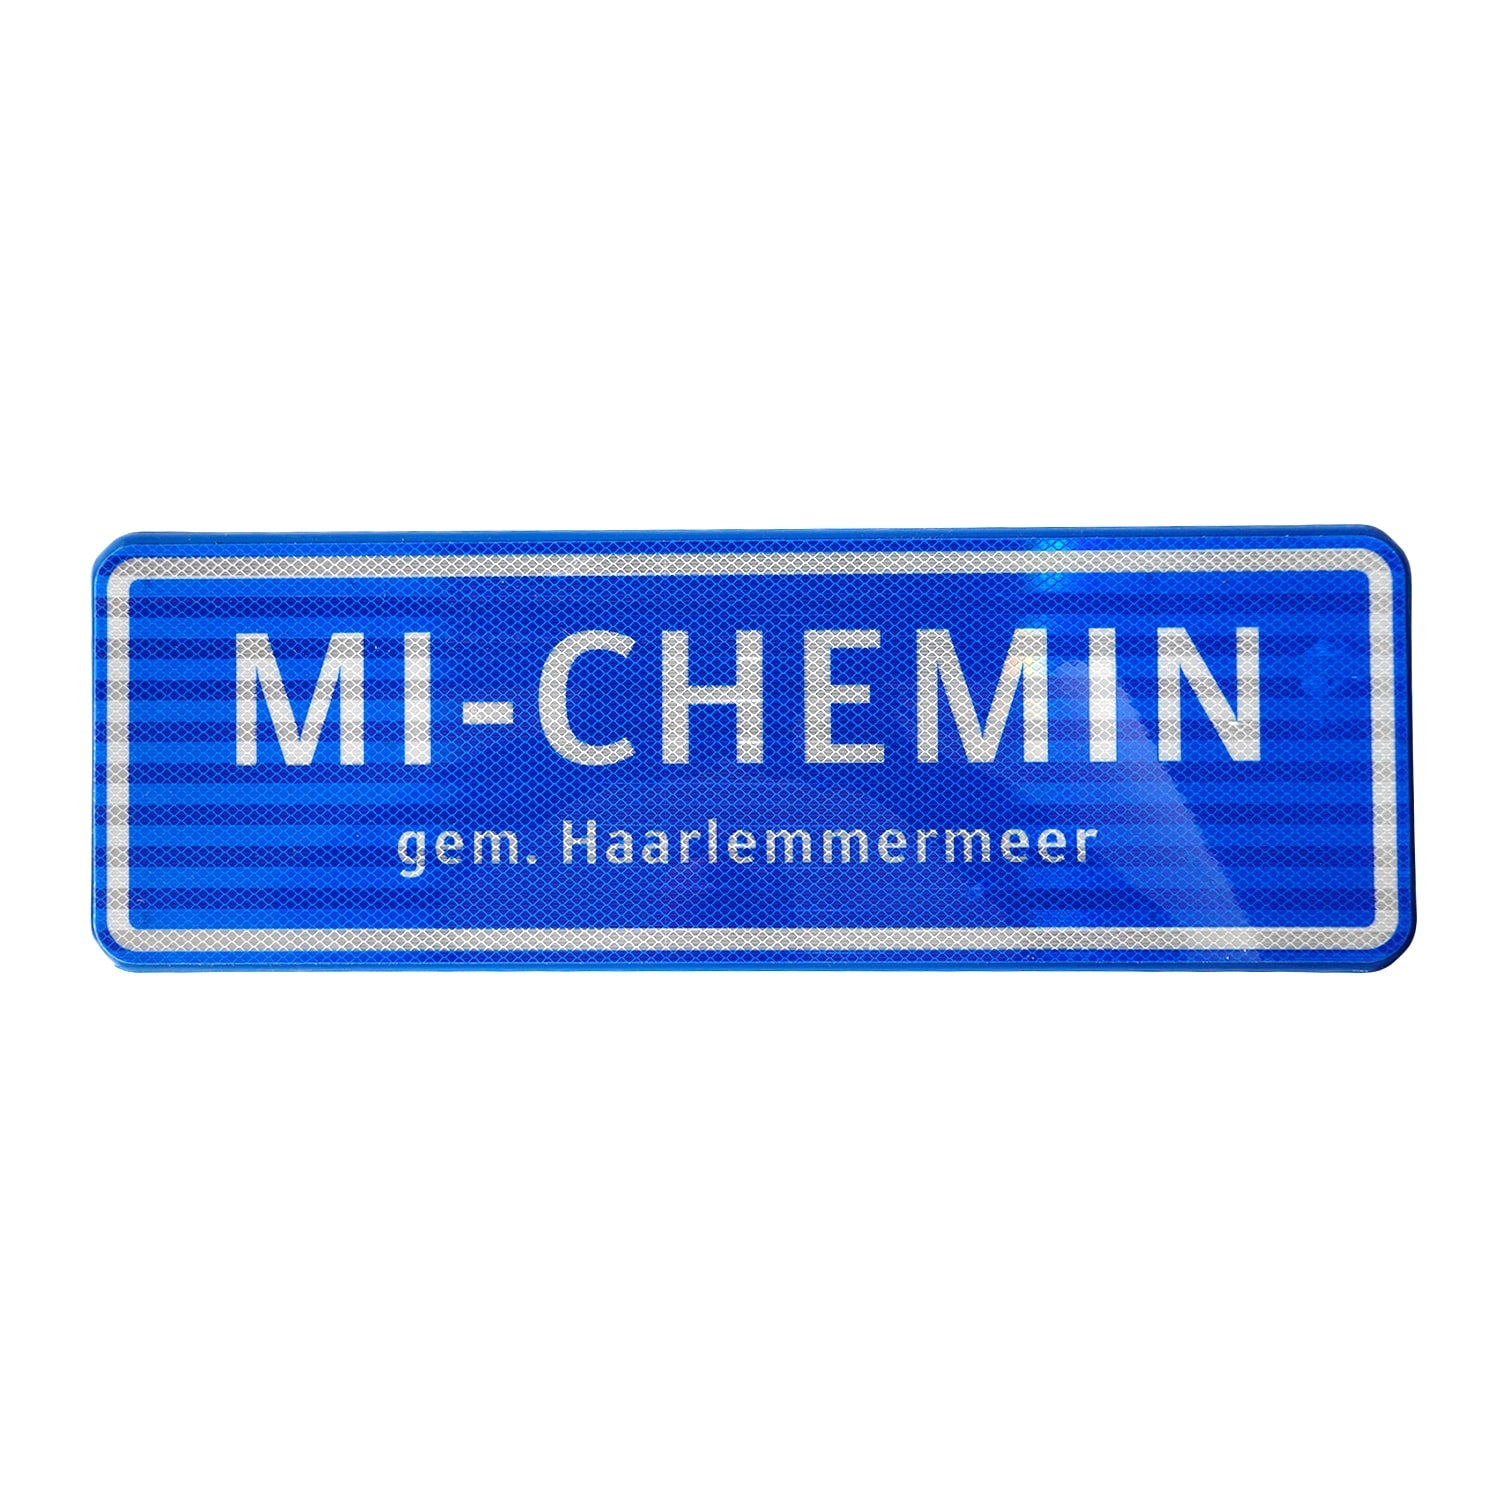 Welcome to Fabulous Mi-Chemin